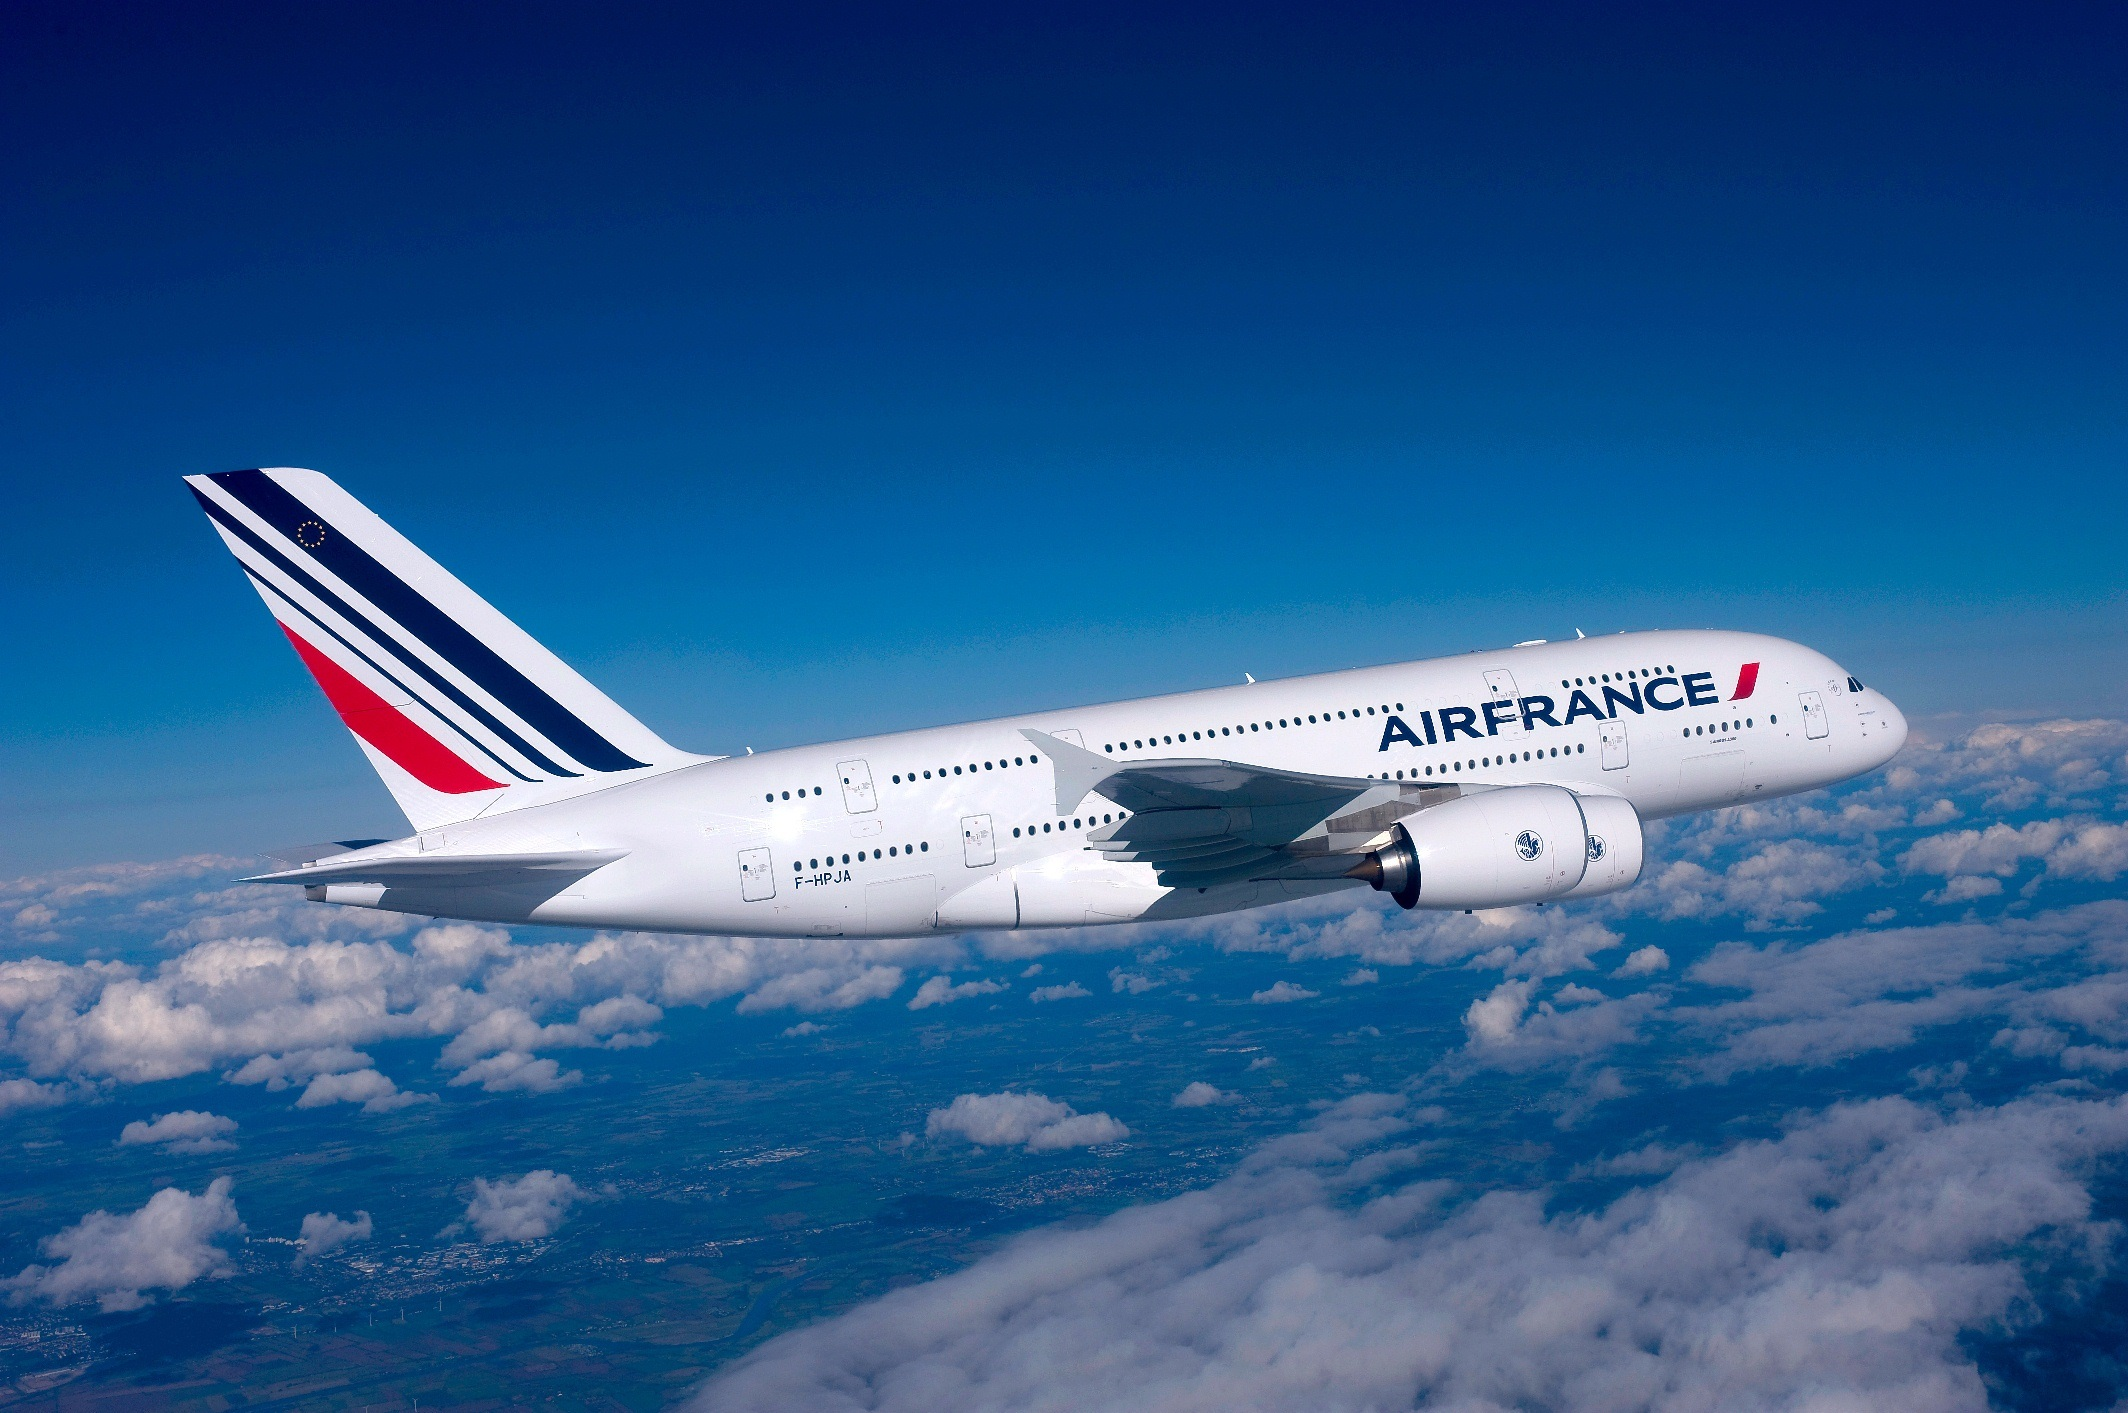 Air France - Compagnie d'avion